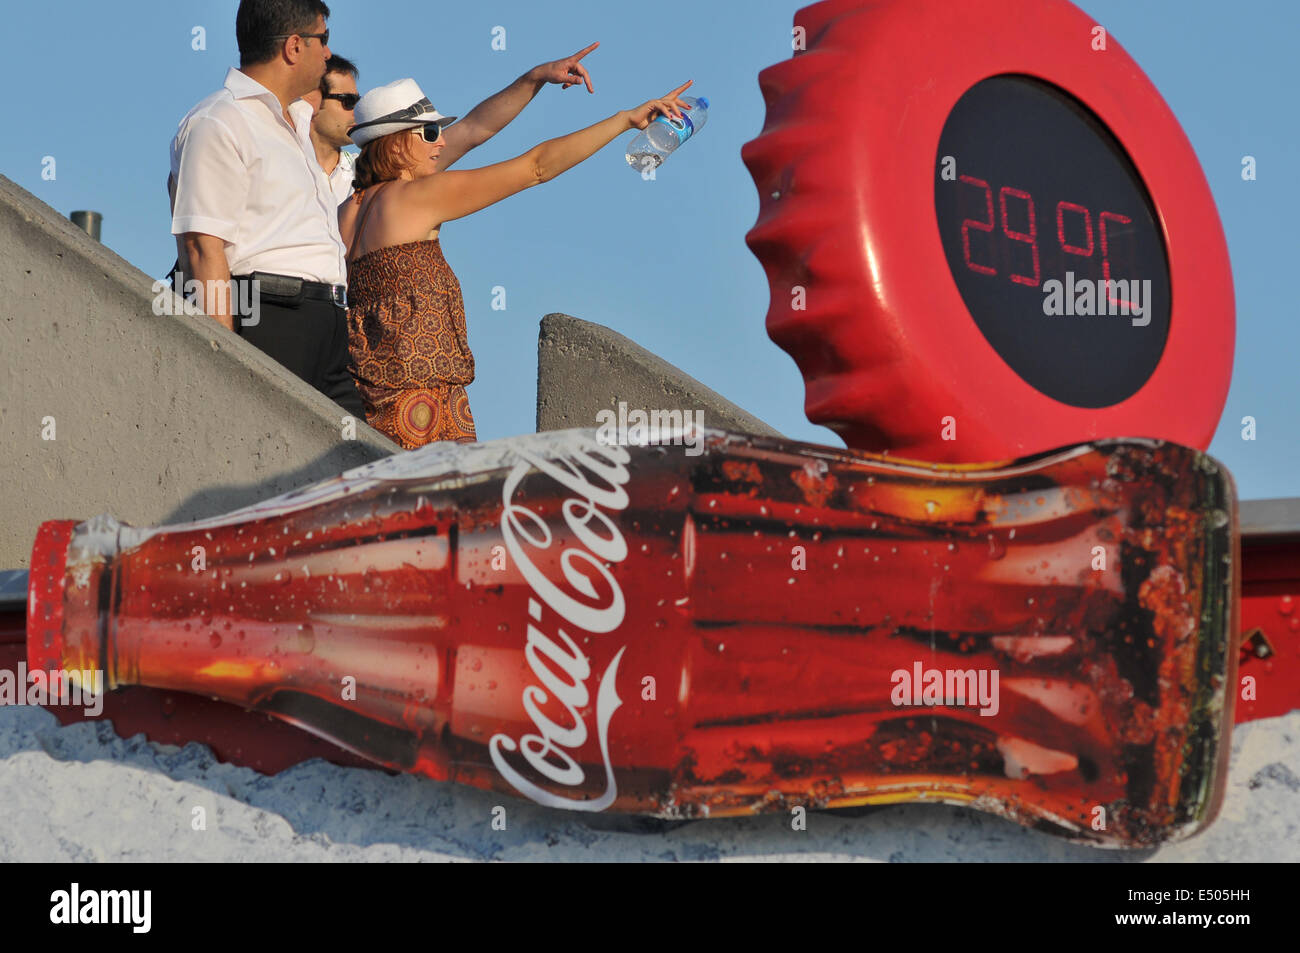 Coca Cola Advertisement Stock Photos & Coca Cola